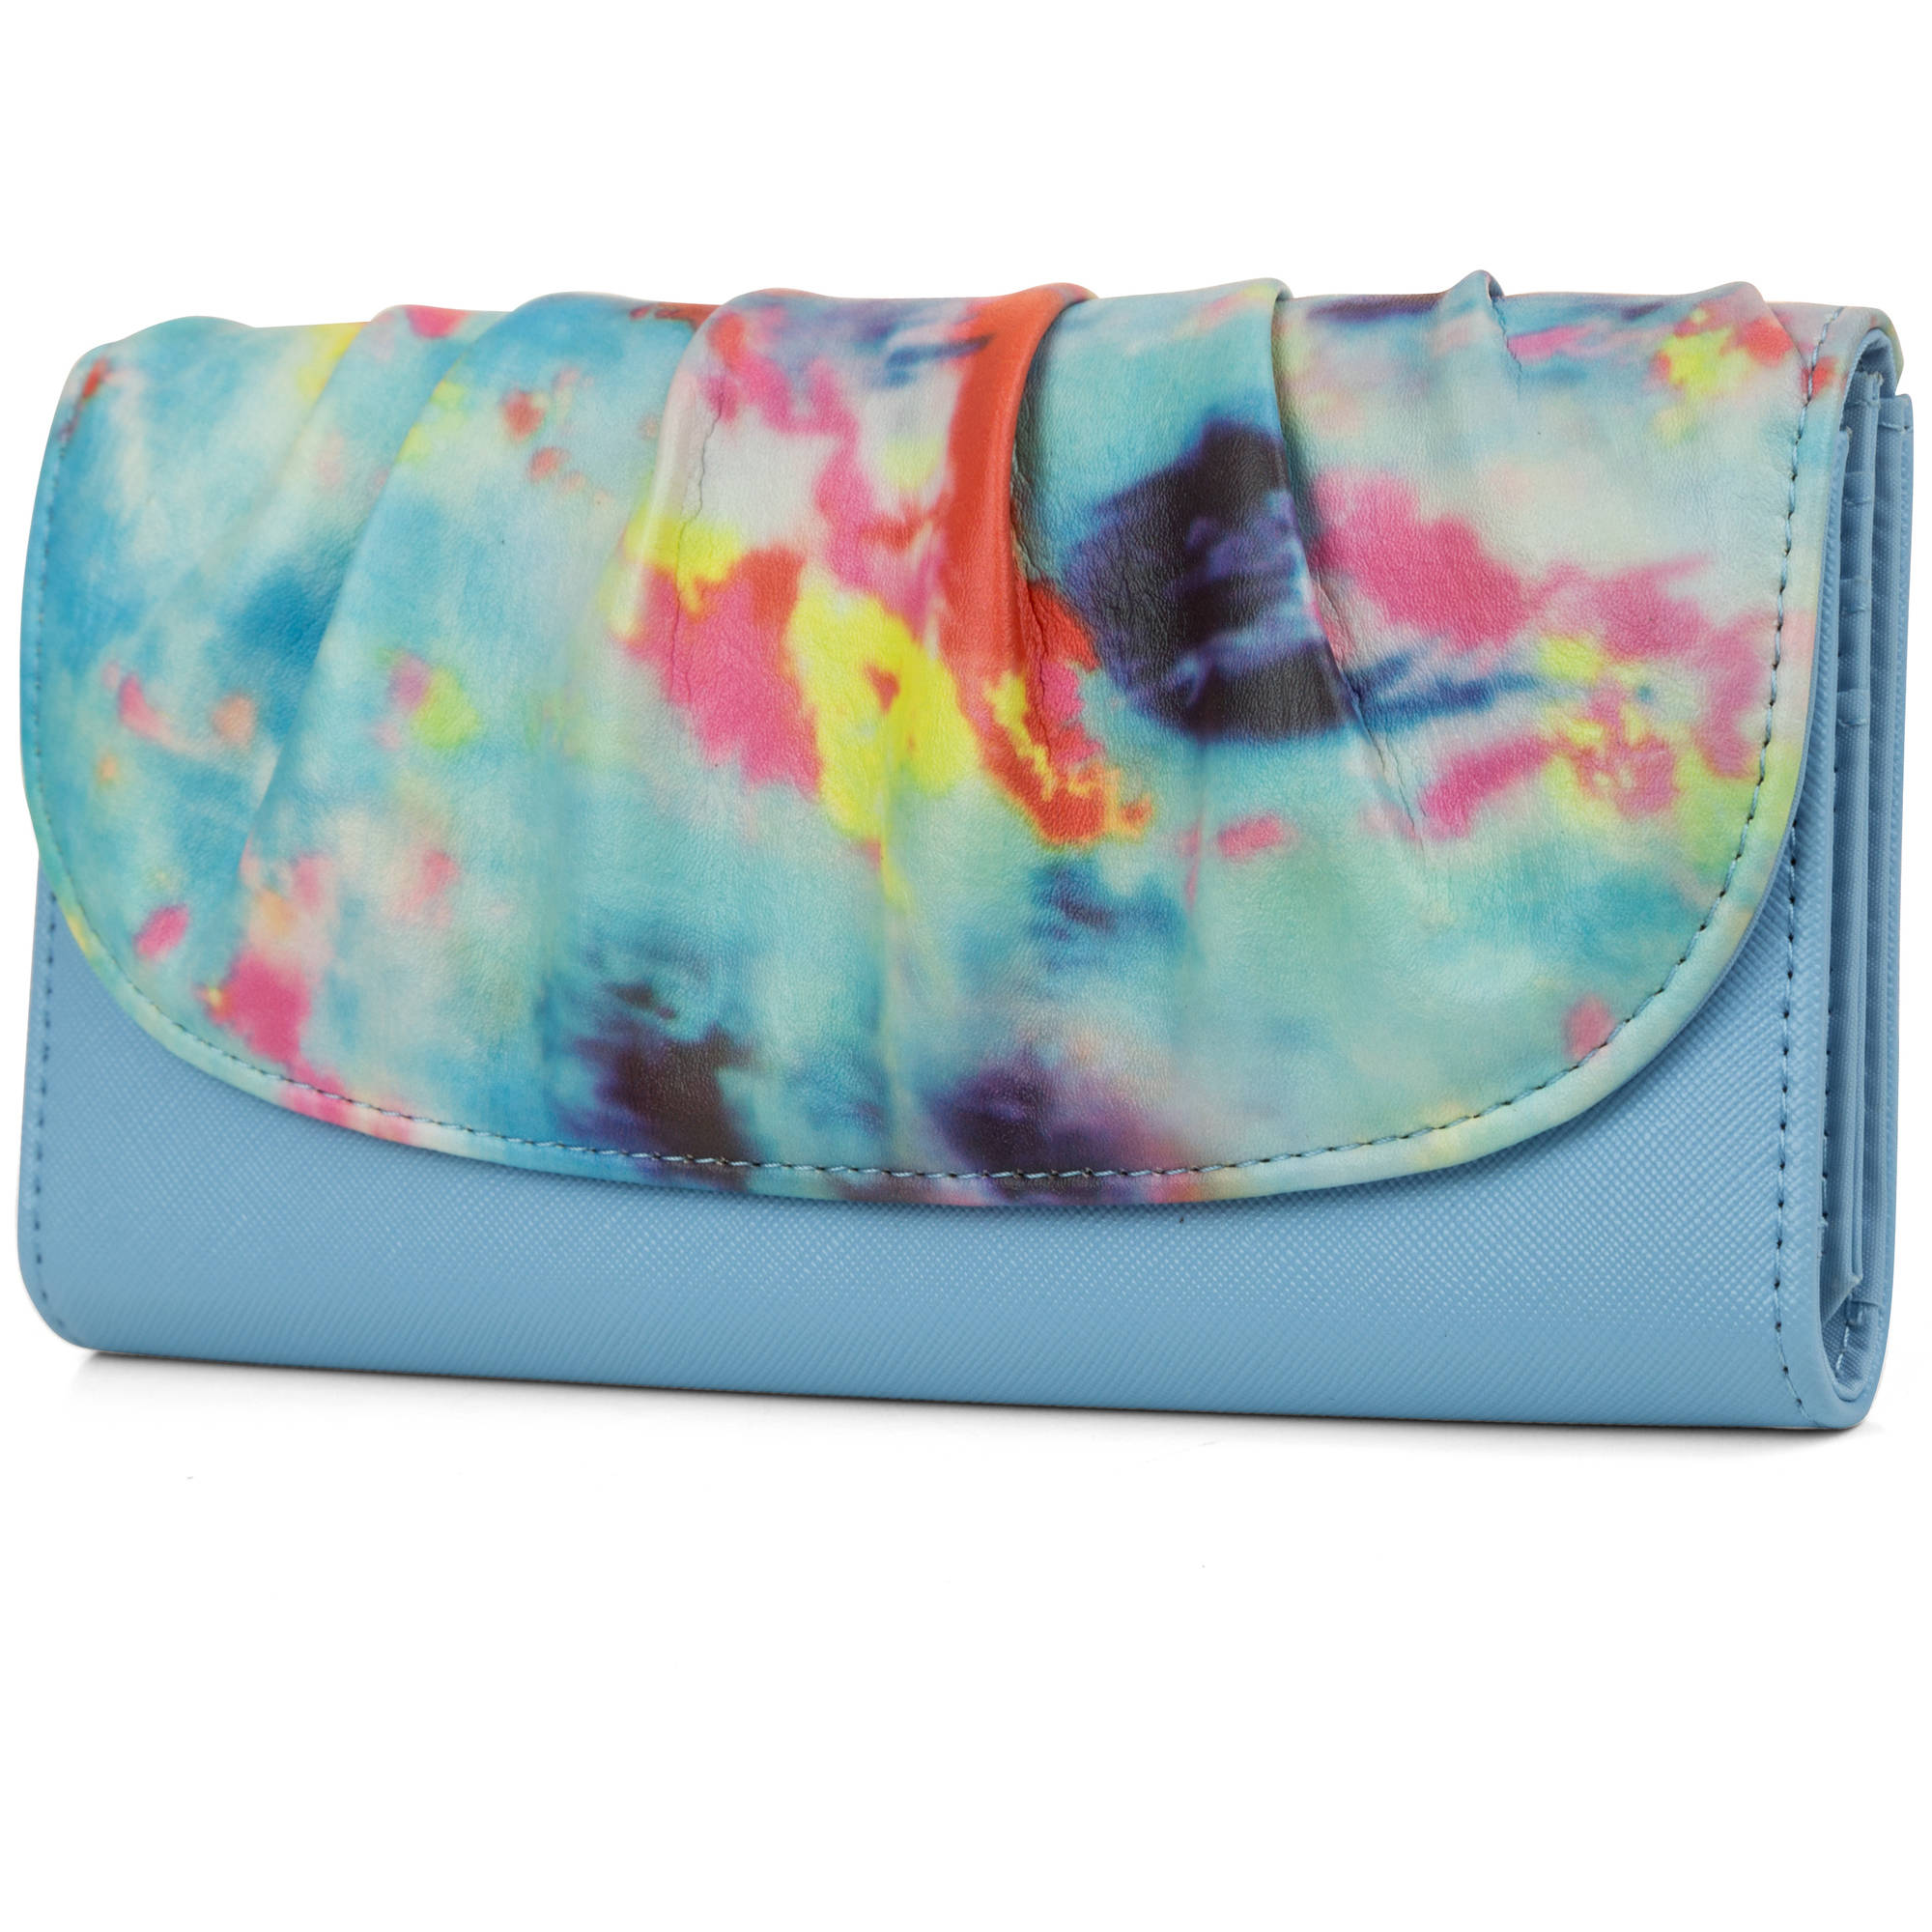 George Women's Floral Wallet